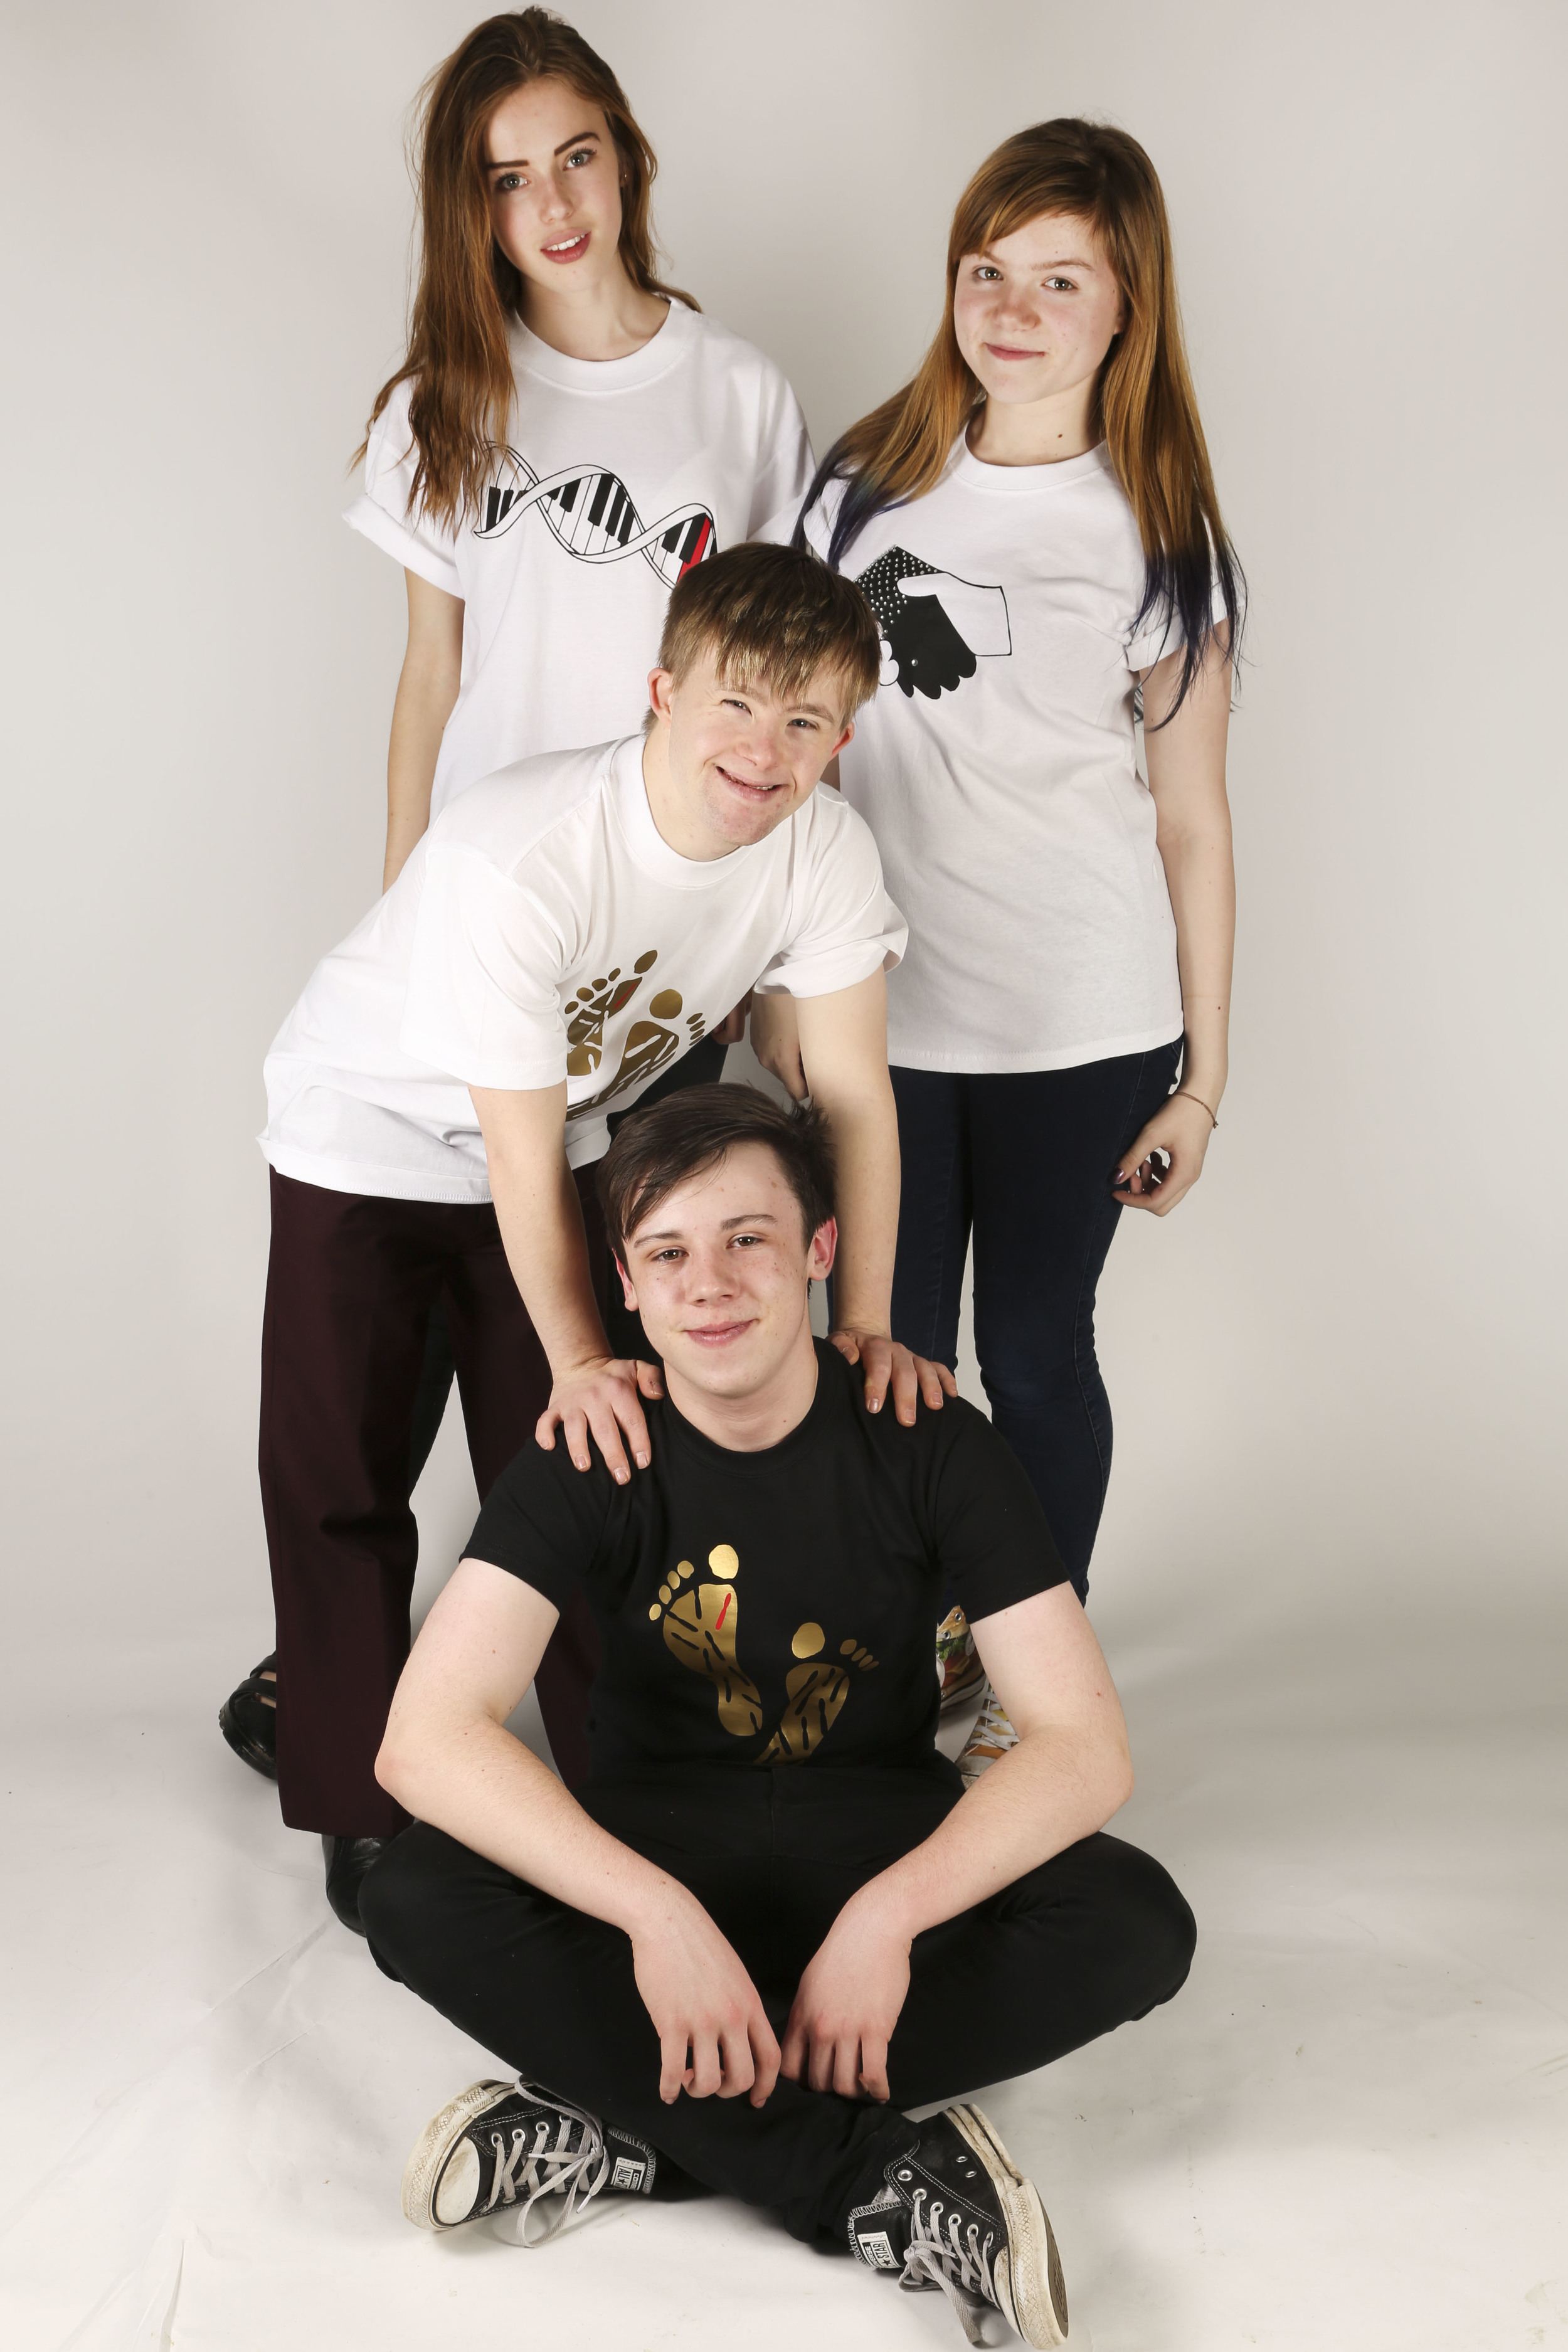 Our T-shirt  campaign